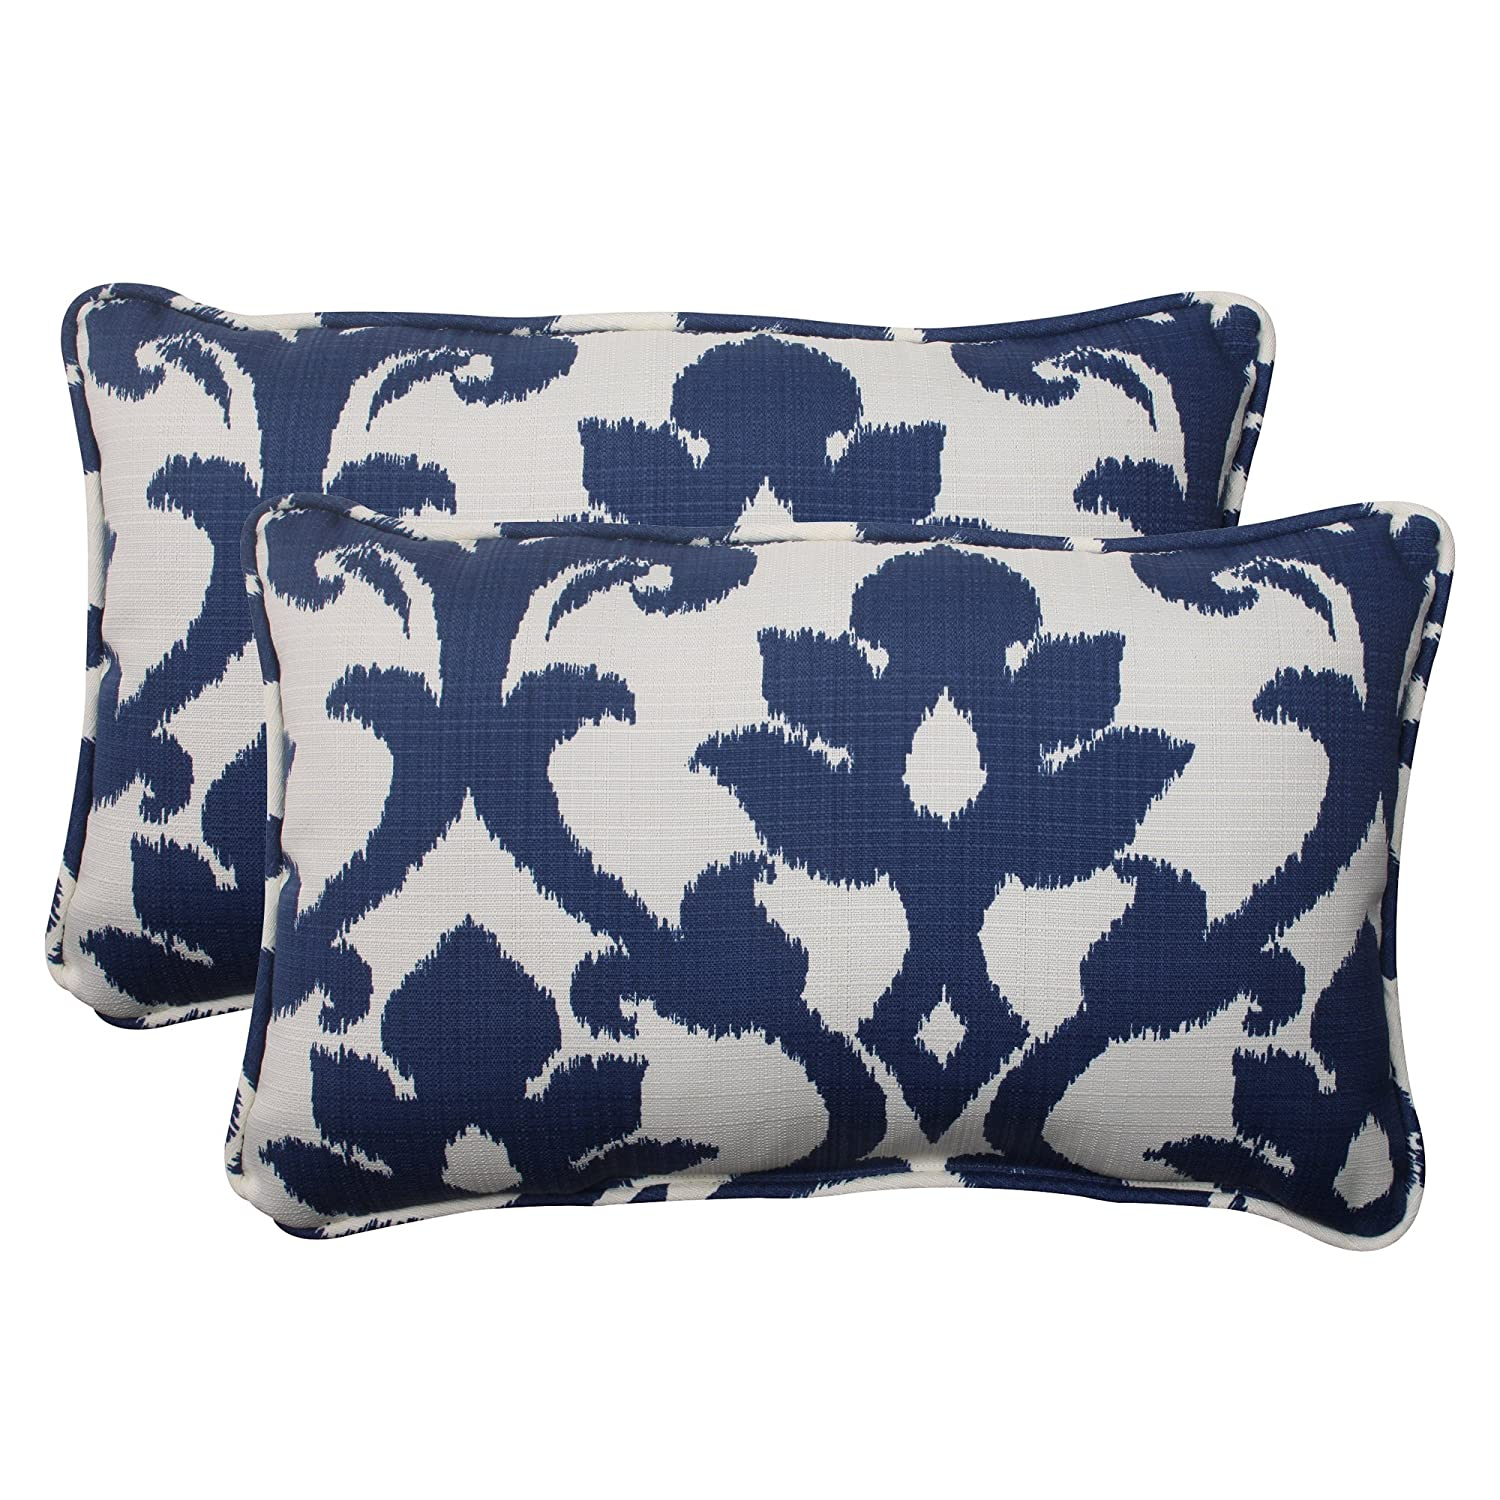 Pillow Perfect Outdoor Bosco Corded Rectangular Throw Pillow, Navy, Set of 2